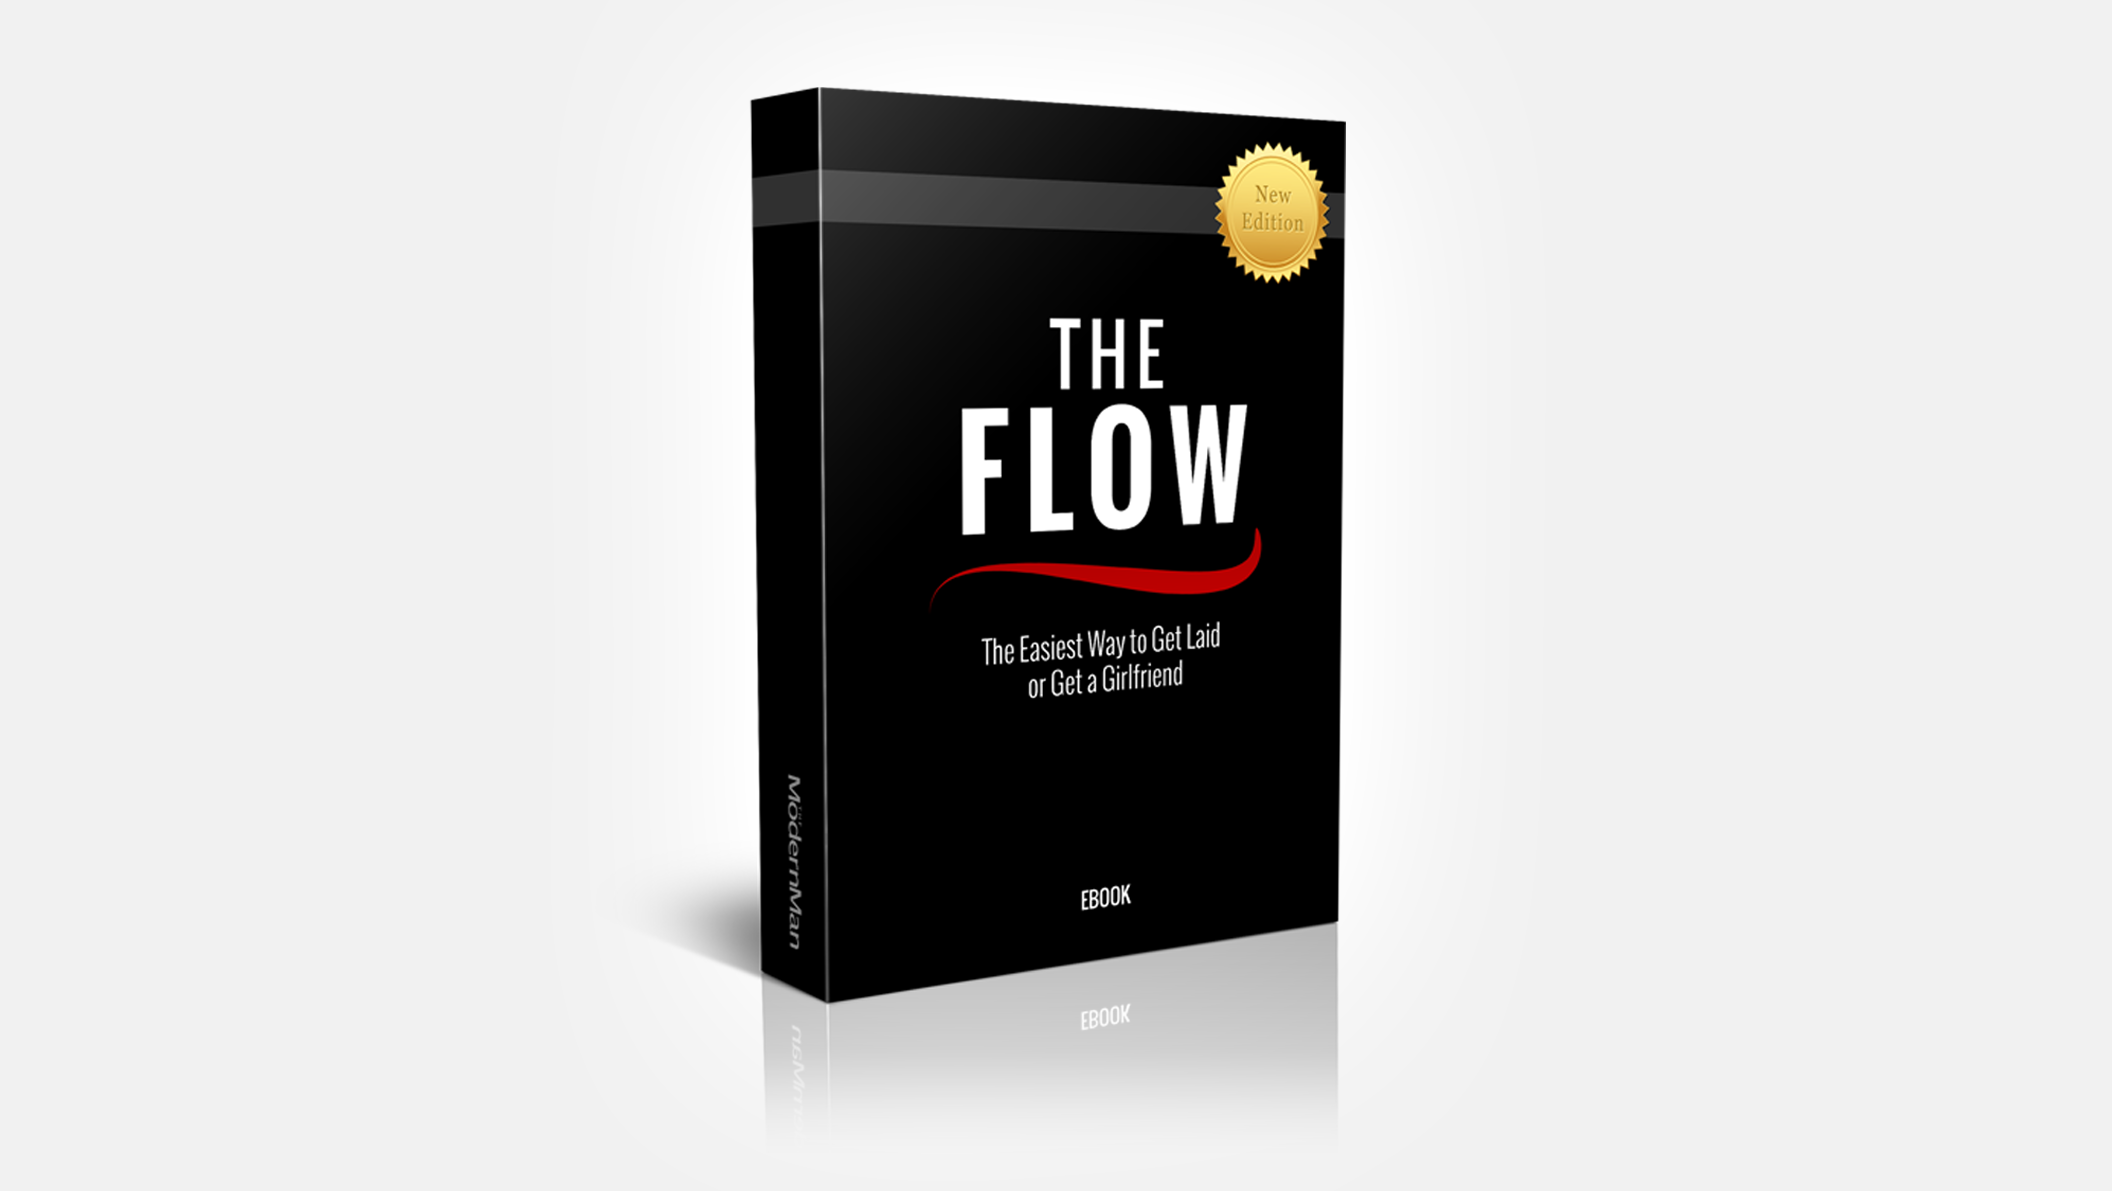 The Flow by Dan Bacon